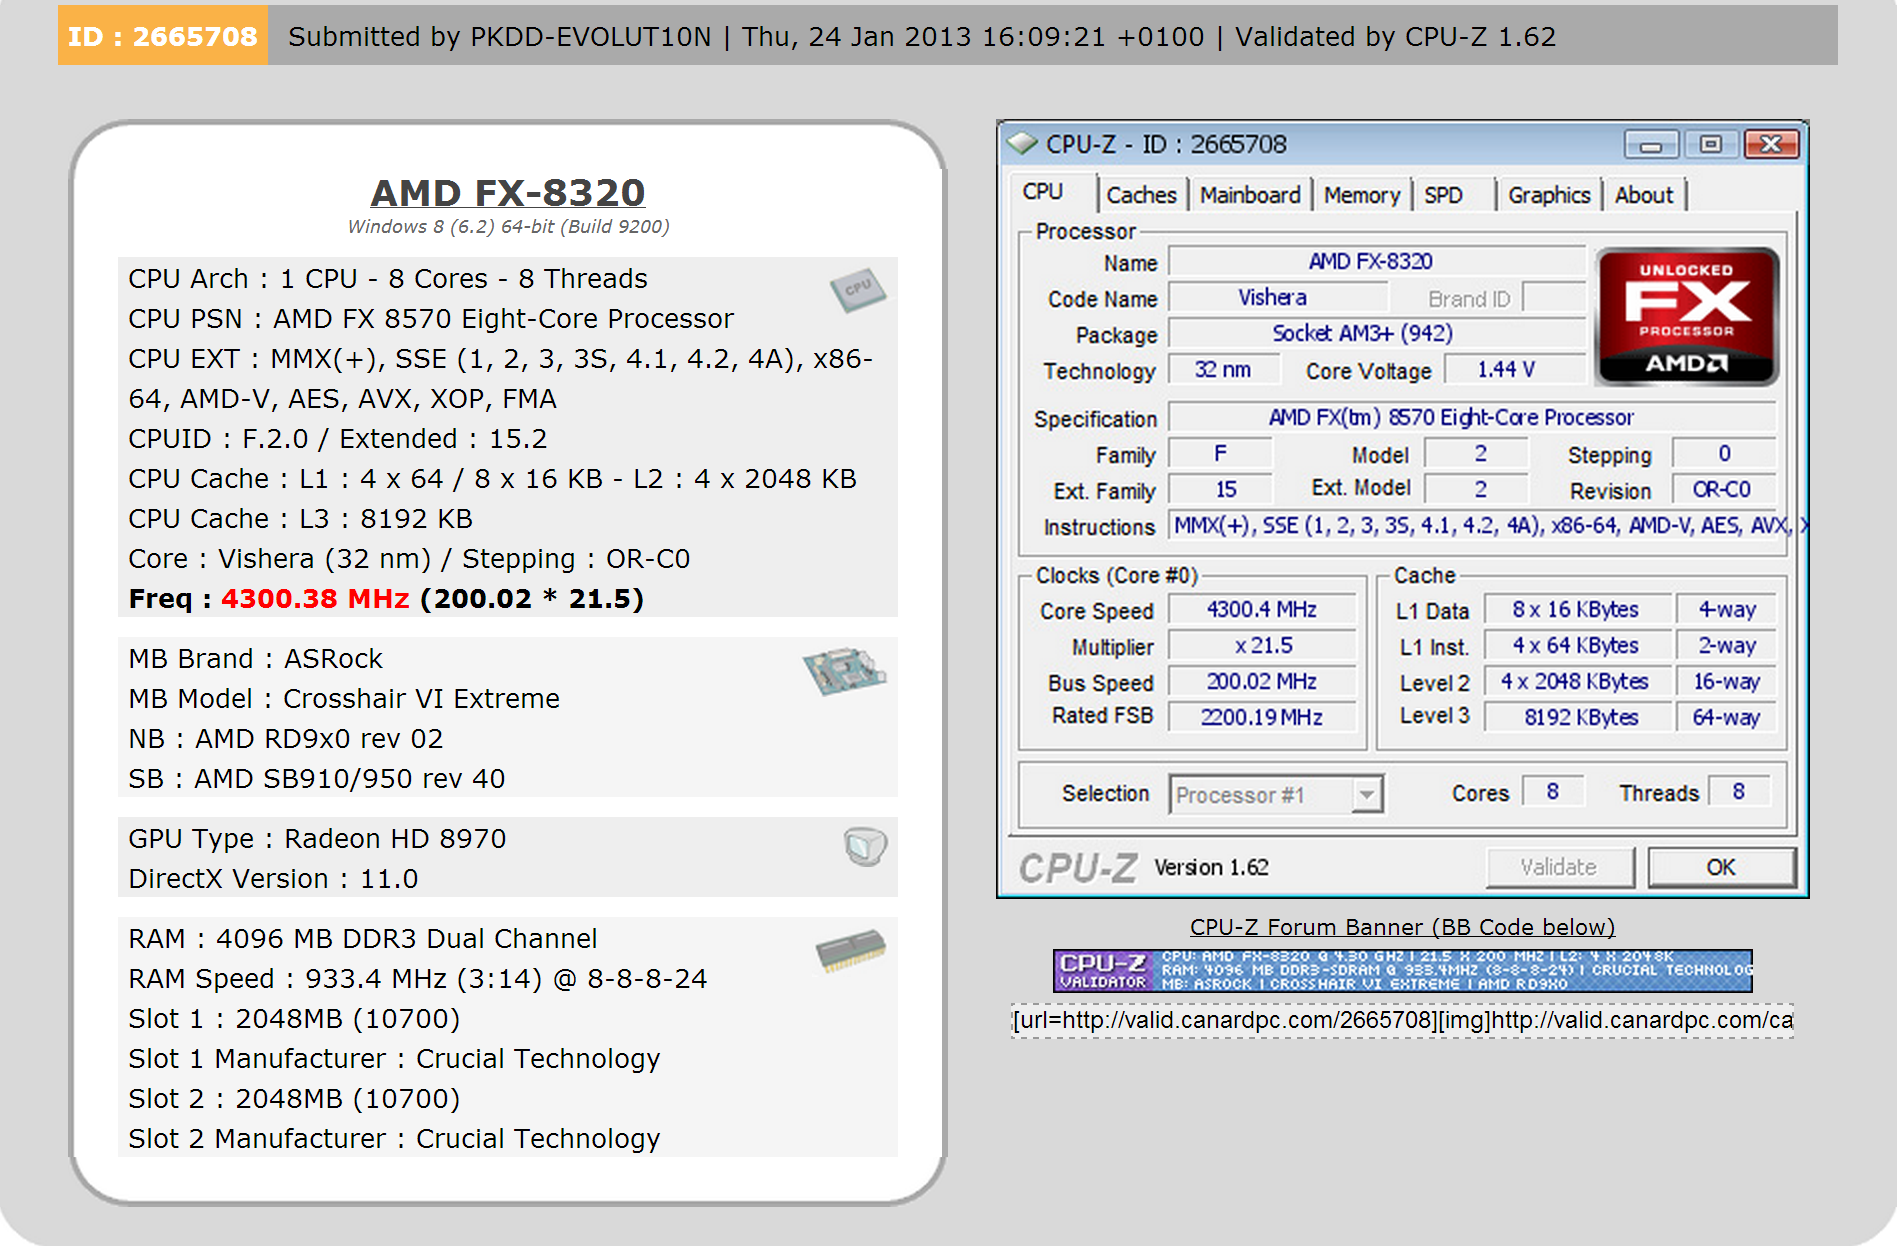 AMD FX 8570 & Radeon HD 8970 Spotted in CPU-Z Database